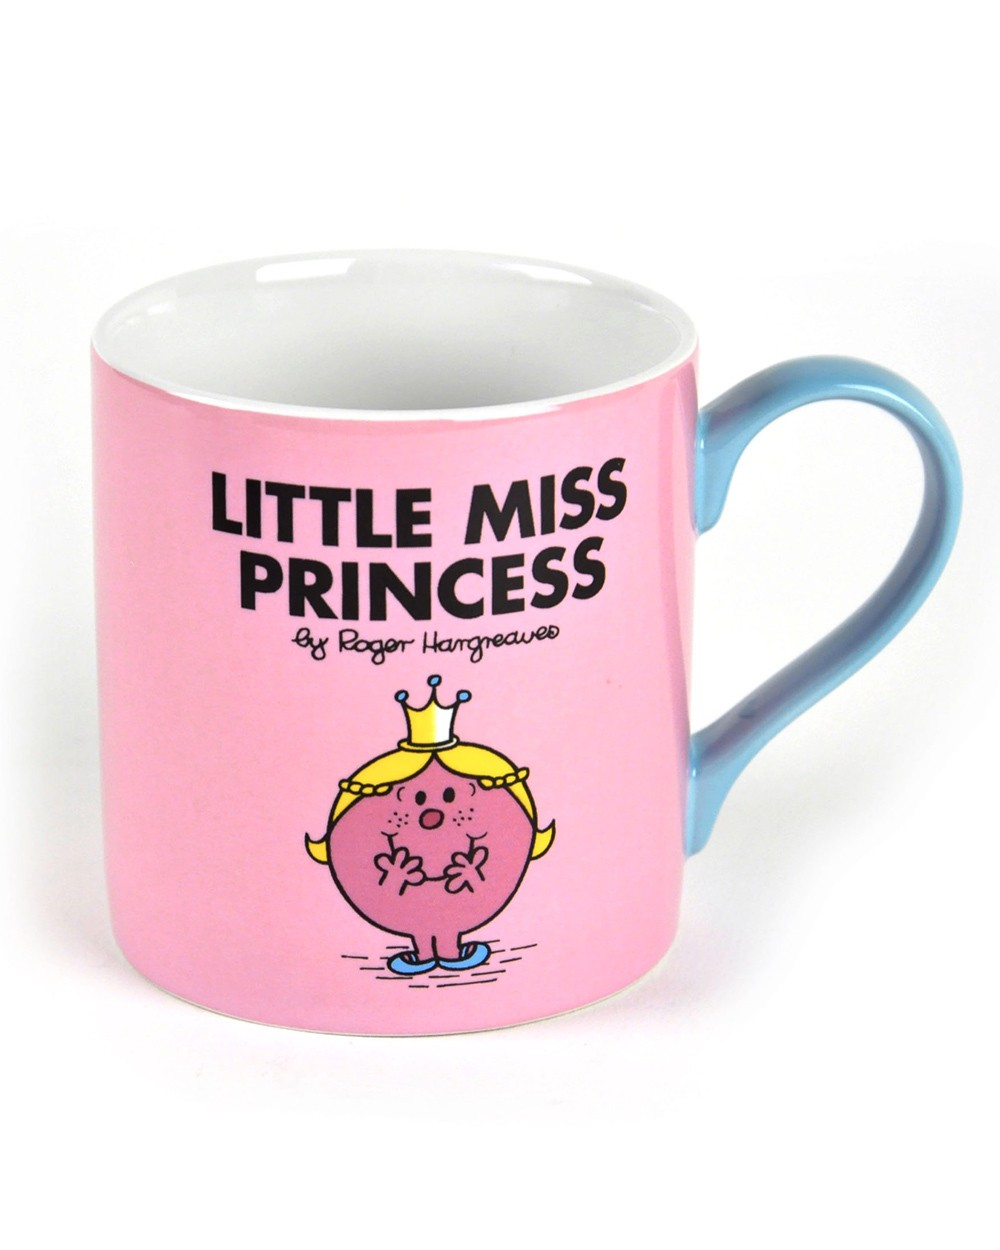 Little Miss Princess Mug